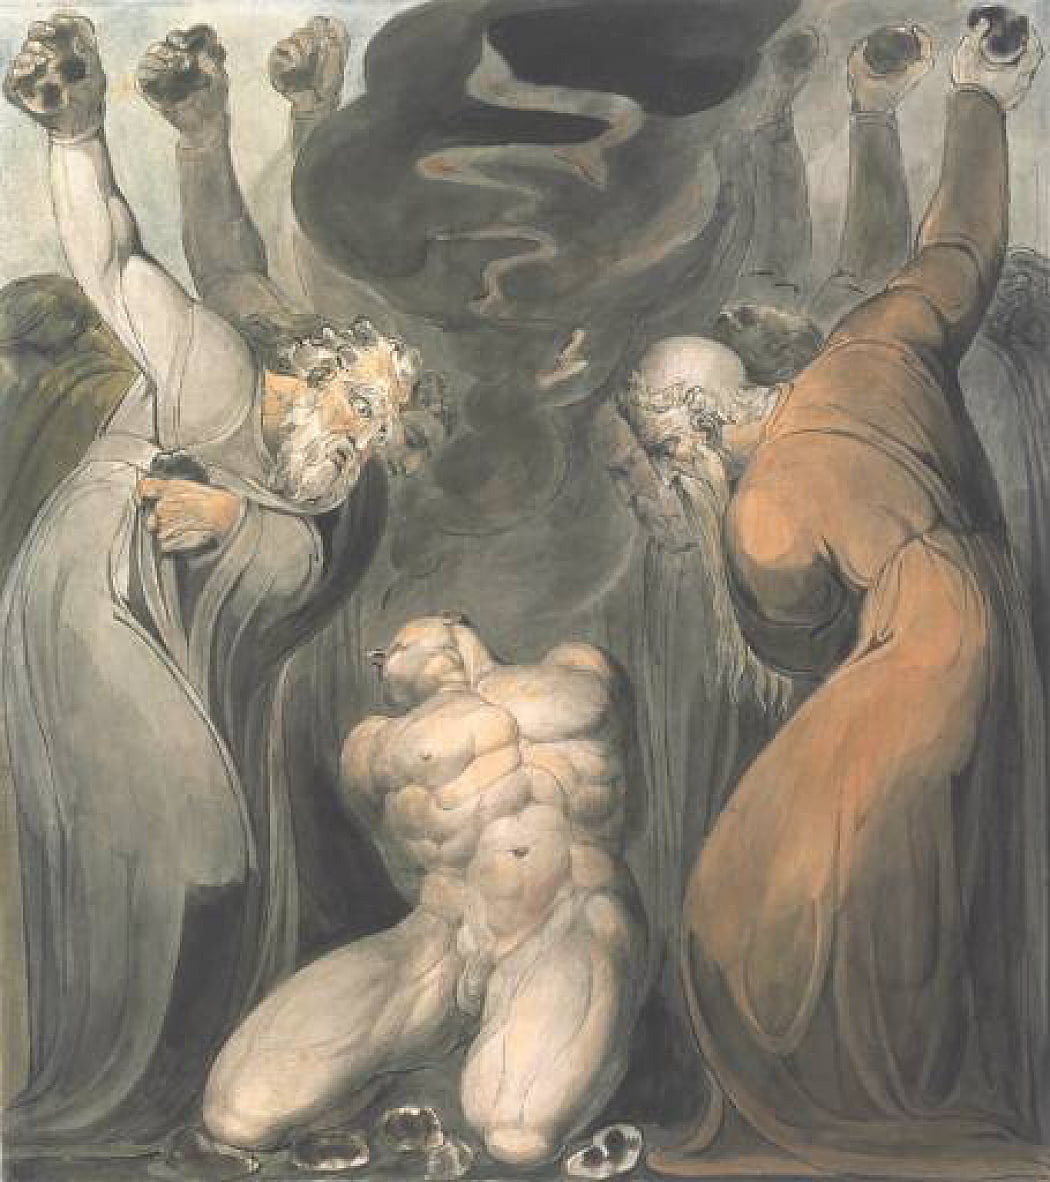 El blasfemo de William Blake